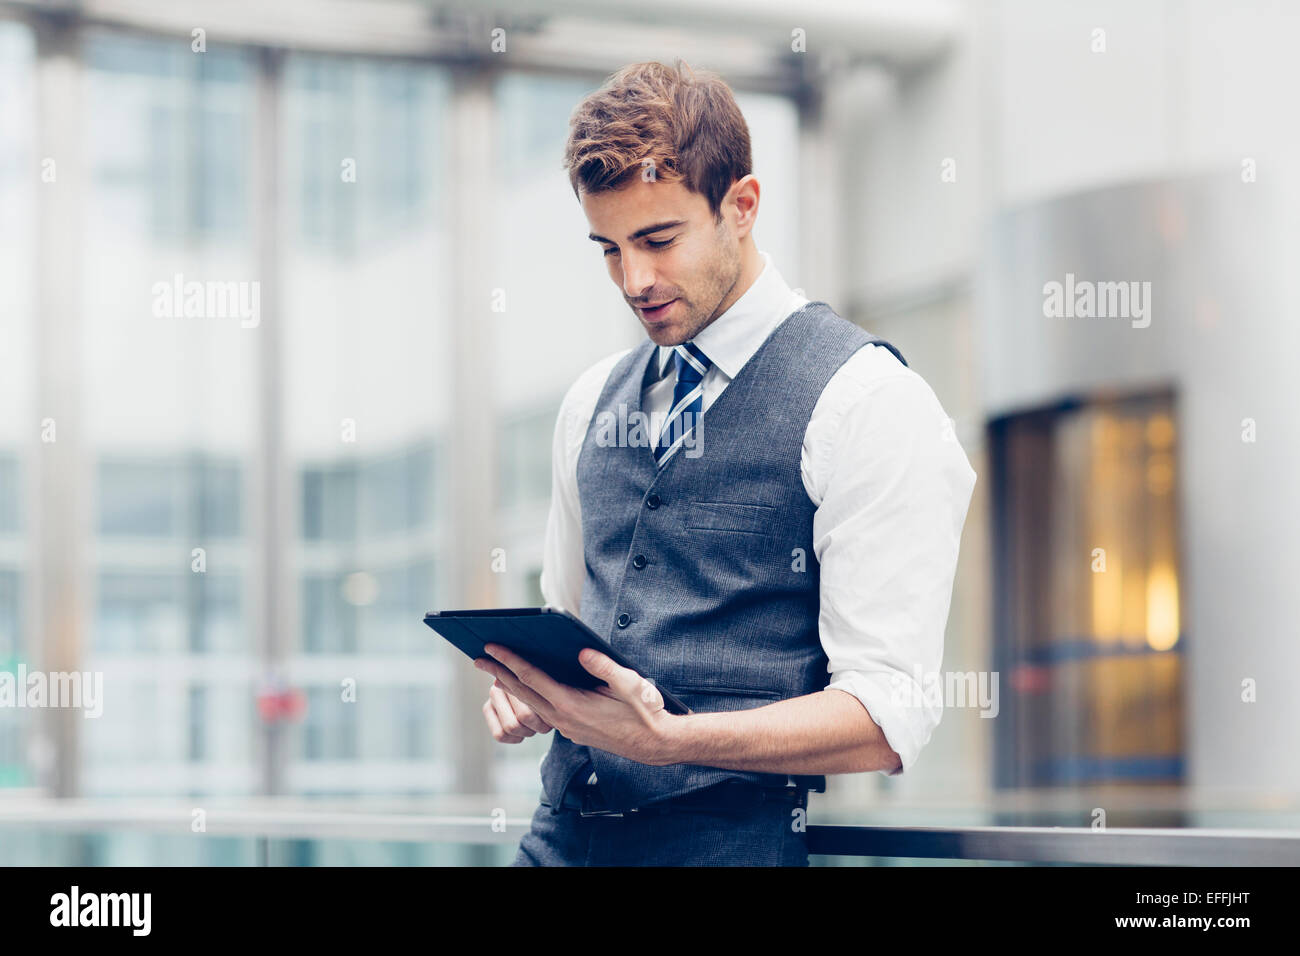 Portrait of a businessman working - Stock Image